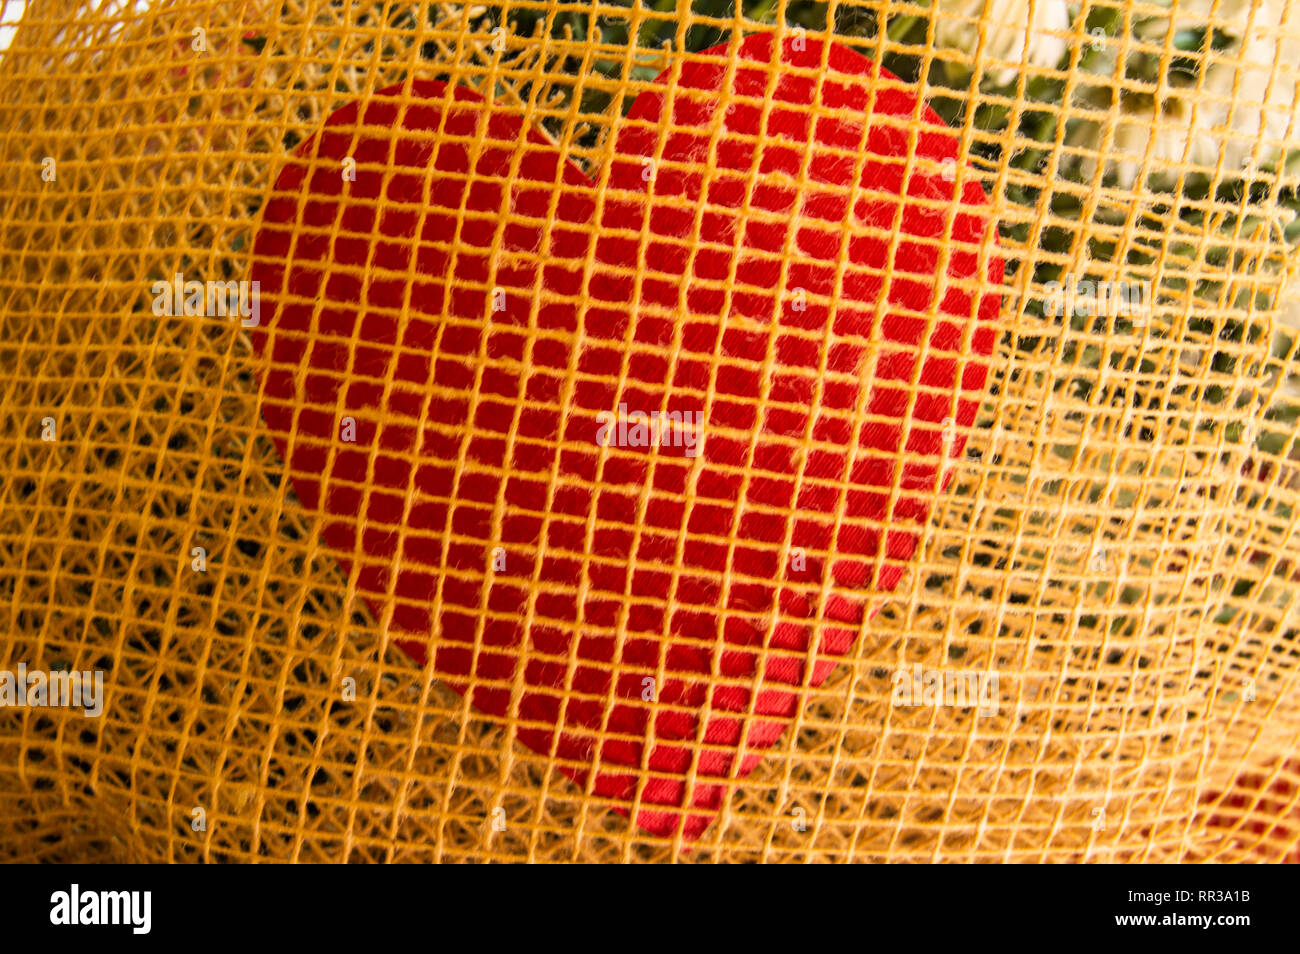 Card HEART FOR BRAIDED MESH, with copy space. - Stock Image